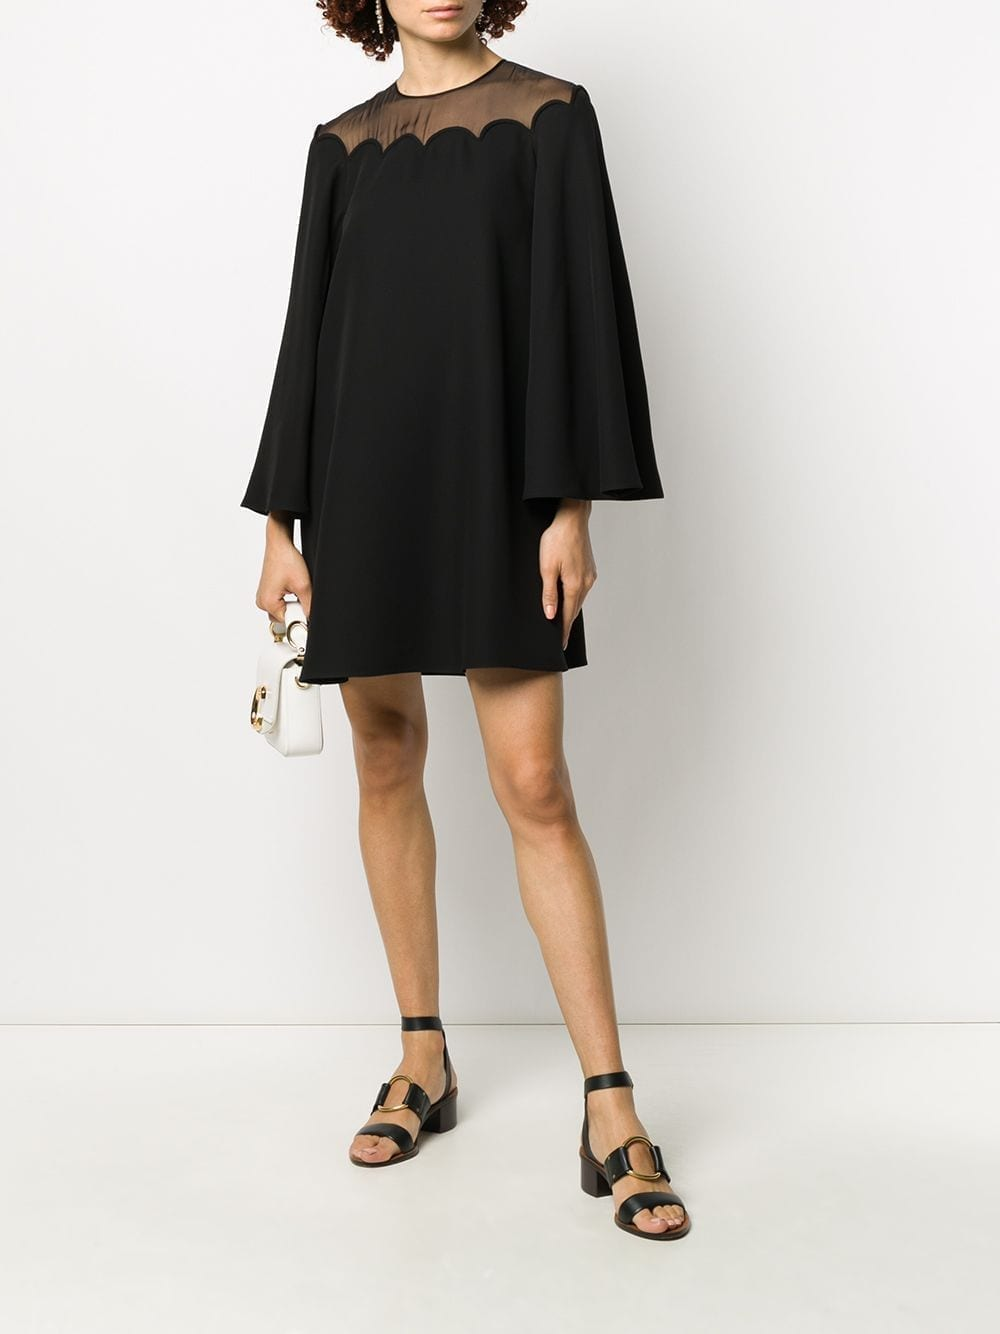 VALENTINO Sheer Panel Short Dress